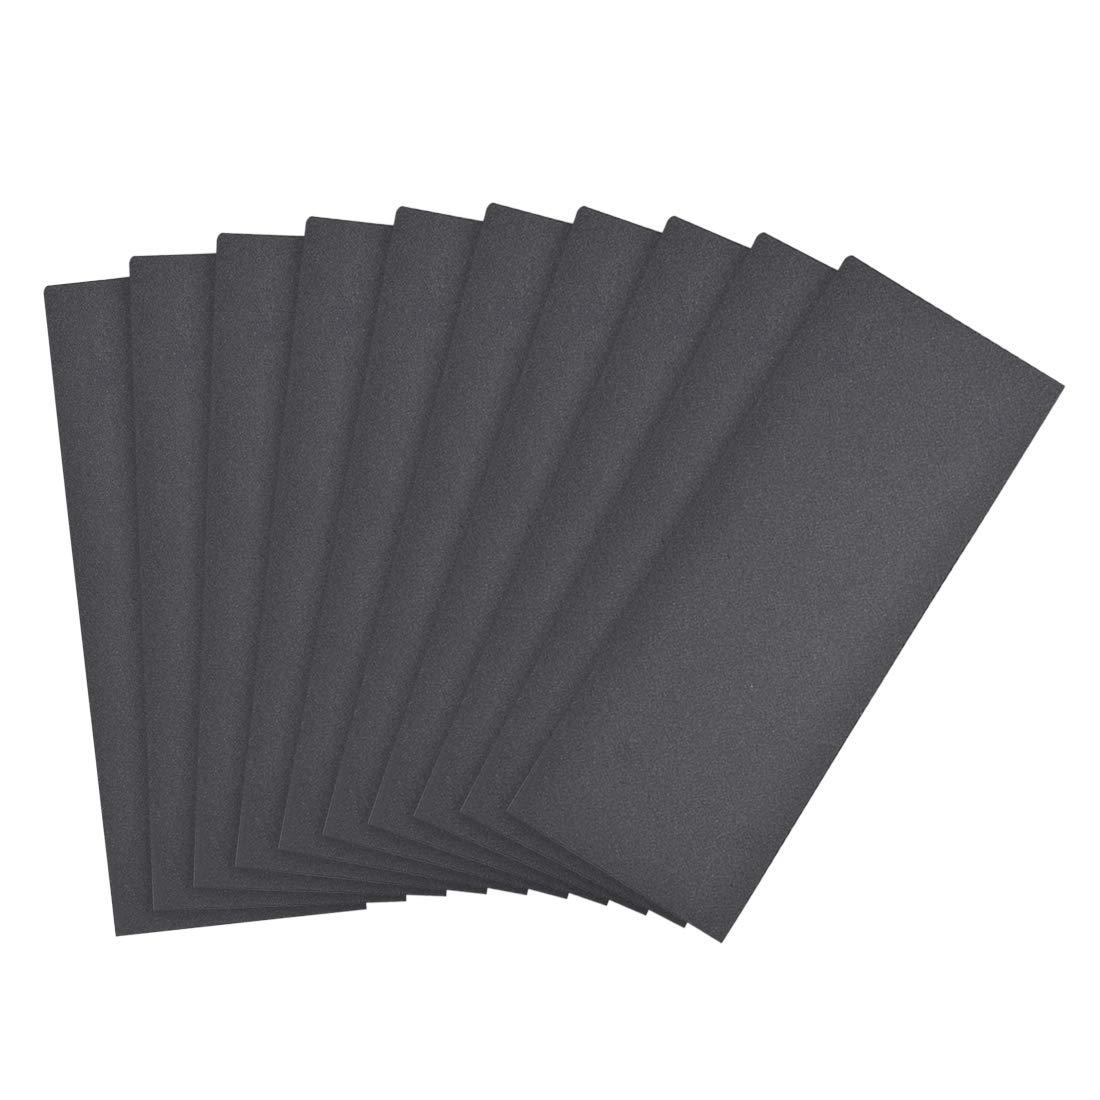 sourcing map 360 Grits Sanding Sheets 9-inch x 3.6-inch Wet Dry Silicon Carbide Sandpaper for Wood Furniture Metal Automotive Polishing 10pcs